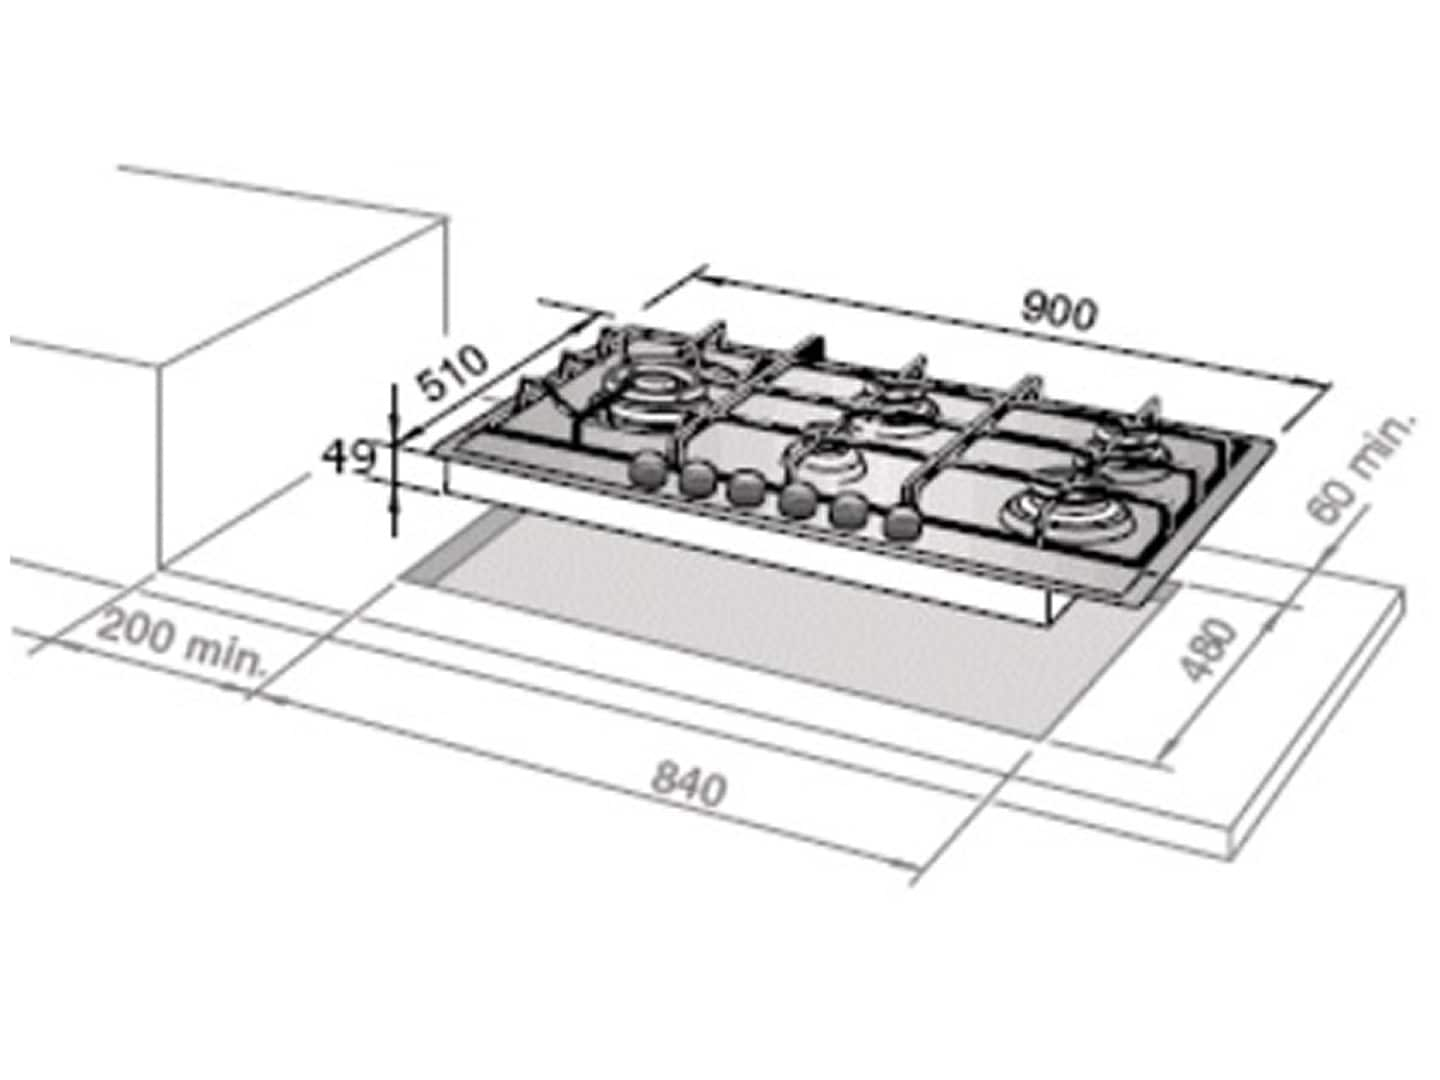 gas cooktop DEGHSL90 install diagram 1440x1080 90cm 5 burner gas cooktop deghsl90 delonghi australia delonghi rangehood wiring diagram at fashall.co